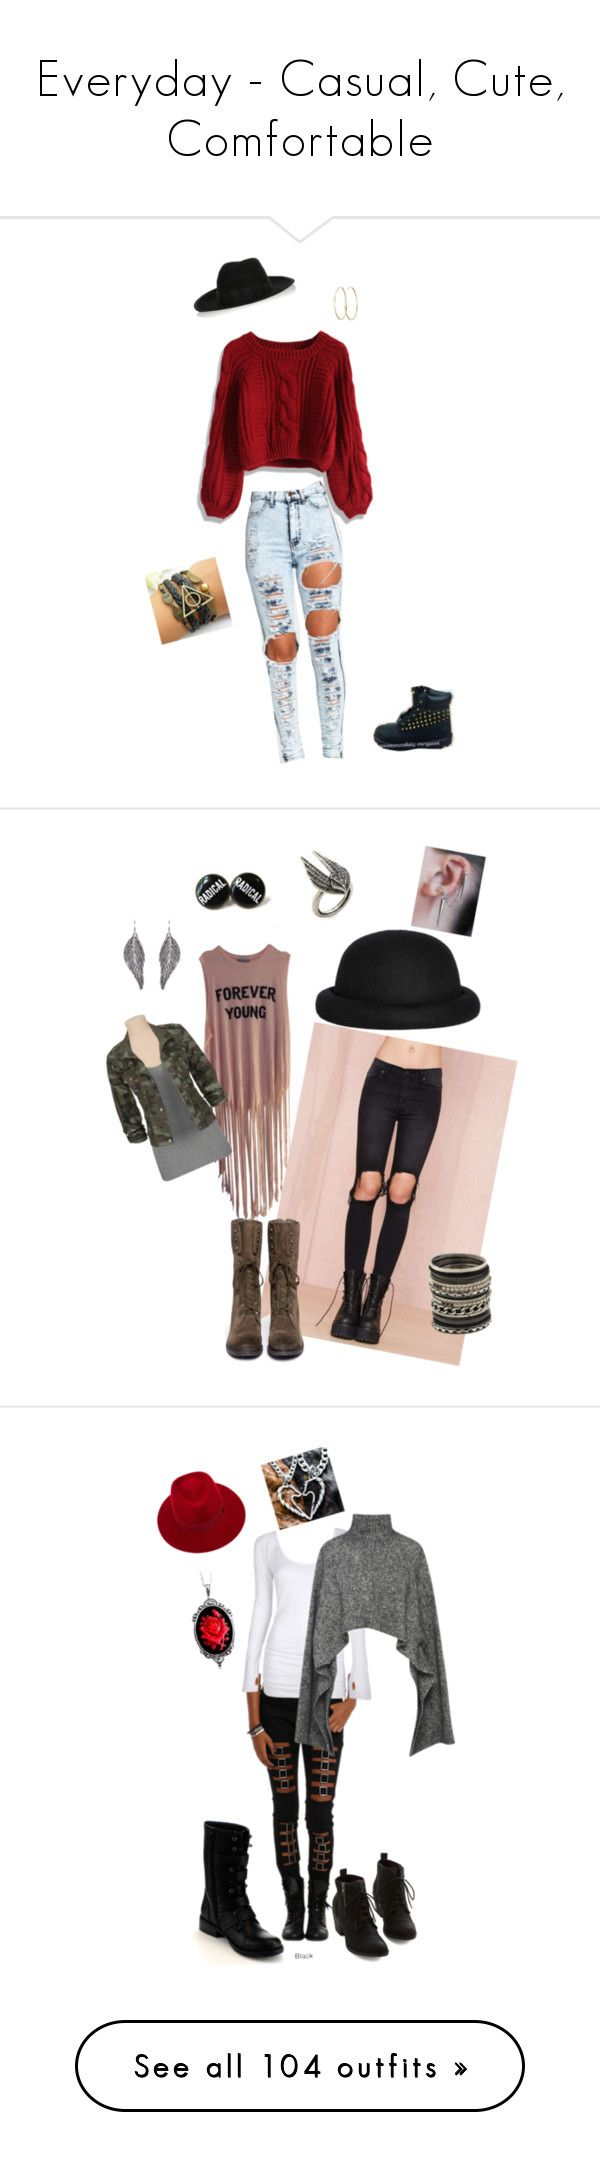 """""""Everyday - Casual, Cute, Comfortable"""" by gypsy4life-13 on Polyvore featuring Chicwish, Timberland, Karl Lagerfeld, Jennifer Meyer Jewelry, Wildfox, UNIF, Sam Edelman, Morgan, ALDO and Lulu Frost"""